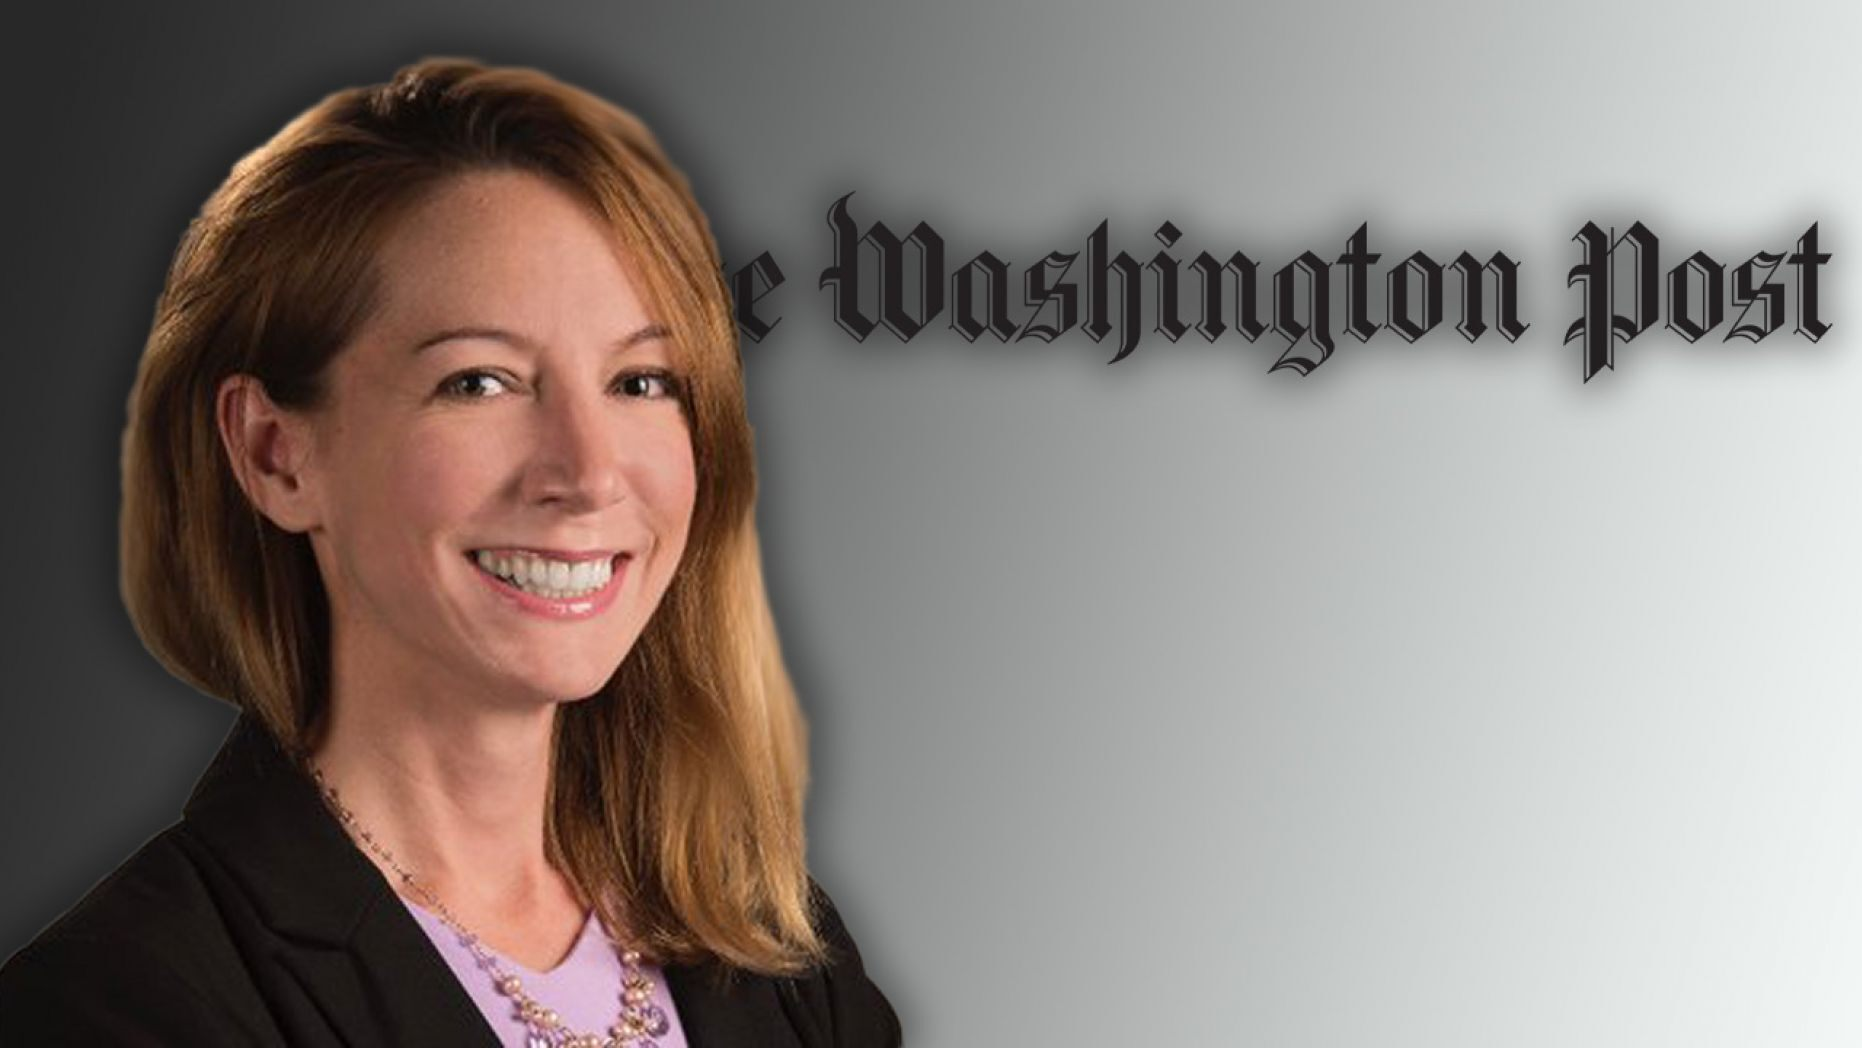 The Washington Post placed a political reporter Felicia Sonmez on administrative leave over tweets she sent as news of Kobe Bryant's death unfolded.